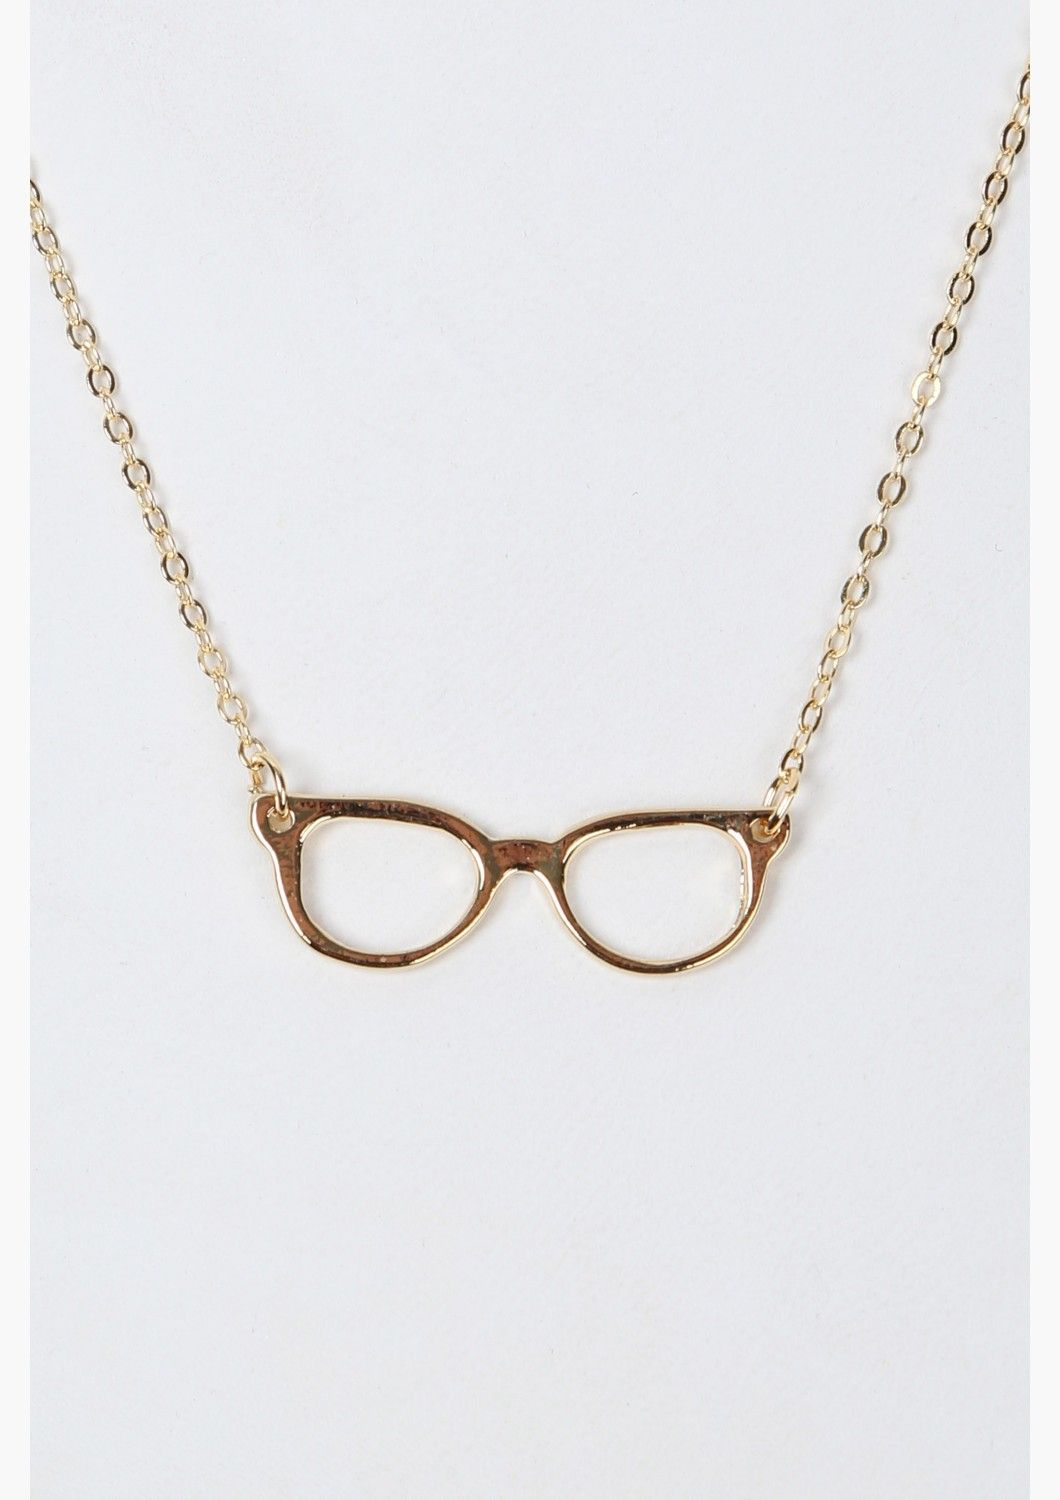 14adaf05597 A great dairy necklace that has NERD eye glasses pendant hanging on center.  Has thin gold chain and multiple holes for length adjustment.